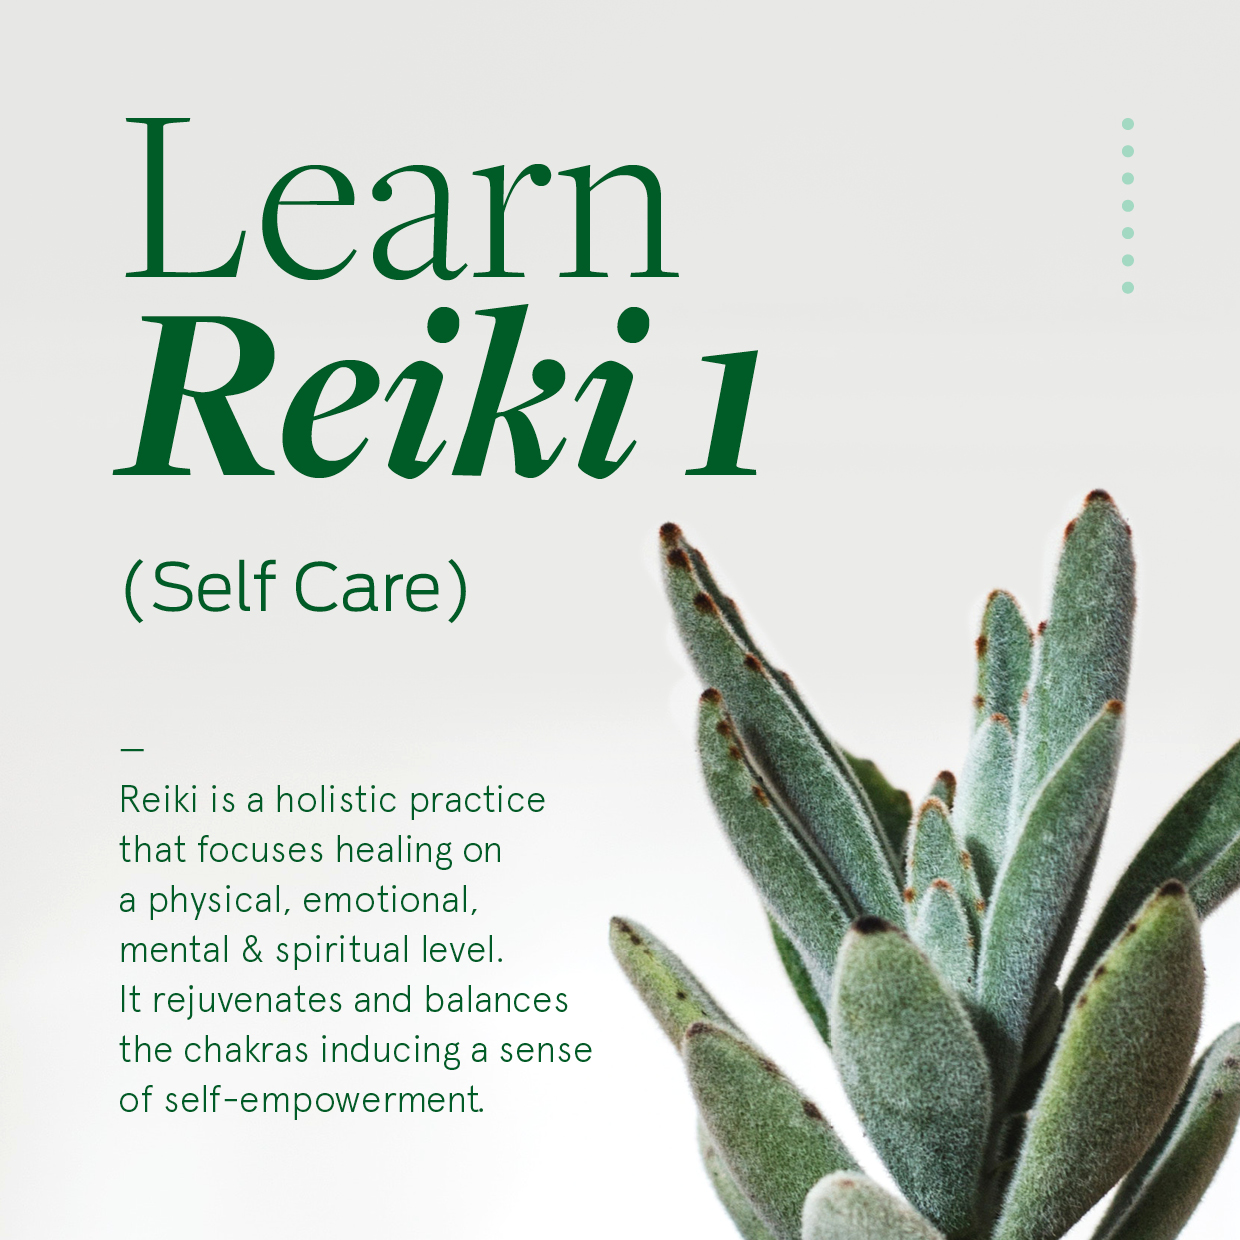 Learn Reiki 1 - What you will receive:A Reiki 1 manual and certificateMorning and afternoon teaWhat you will learn:About the Reiki Process – from level one to masters.What Reiki isThe History of Reiki - Dr Mikao UsuiThe 5 principles of Reiki.The attunement and cleansing processThe energetic system - ChakrasGroundingProtectionCleansingAbout our thoughts & IntentionsHow to meditate/ different stylesIntuition & the ClairsTreatment processGassho/Self CareHand positions for self careYour Lineage